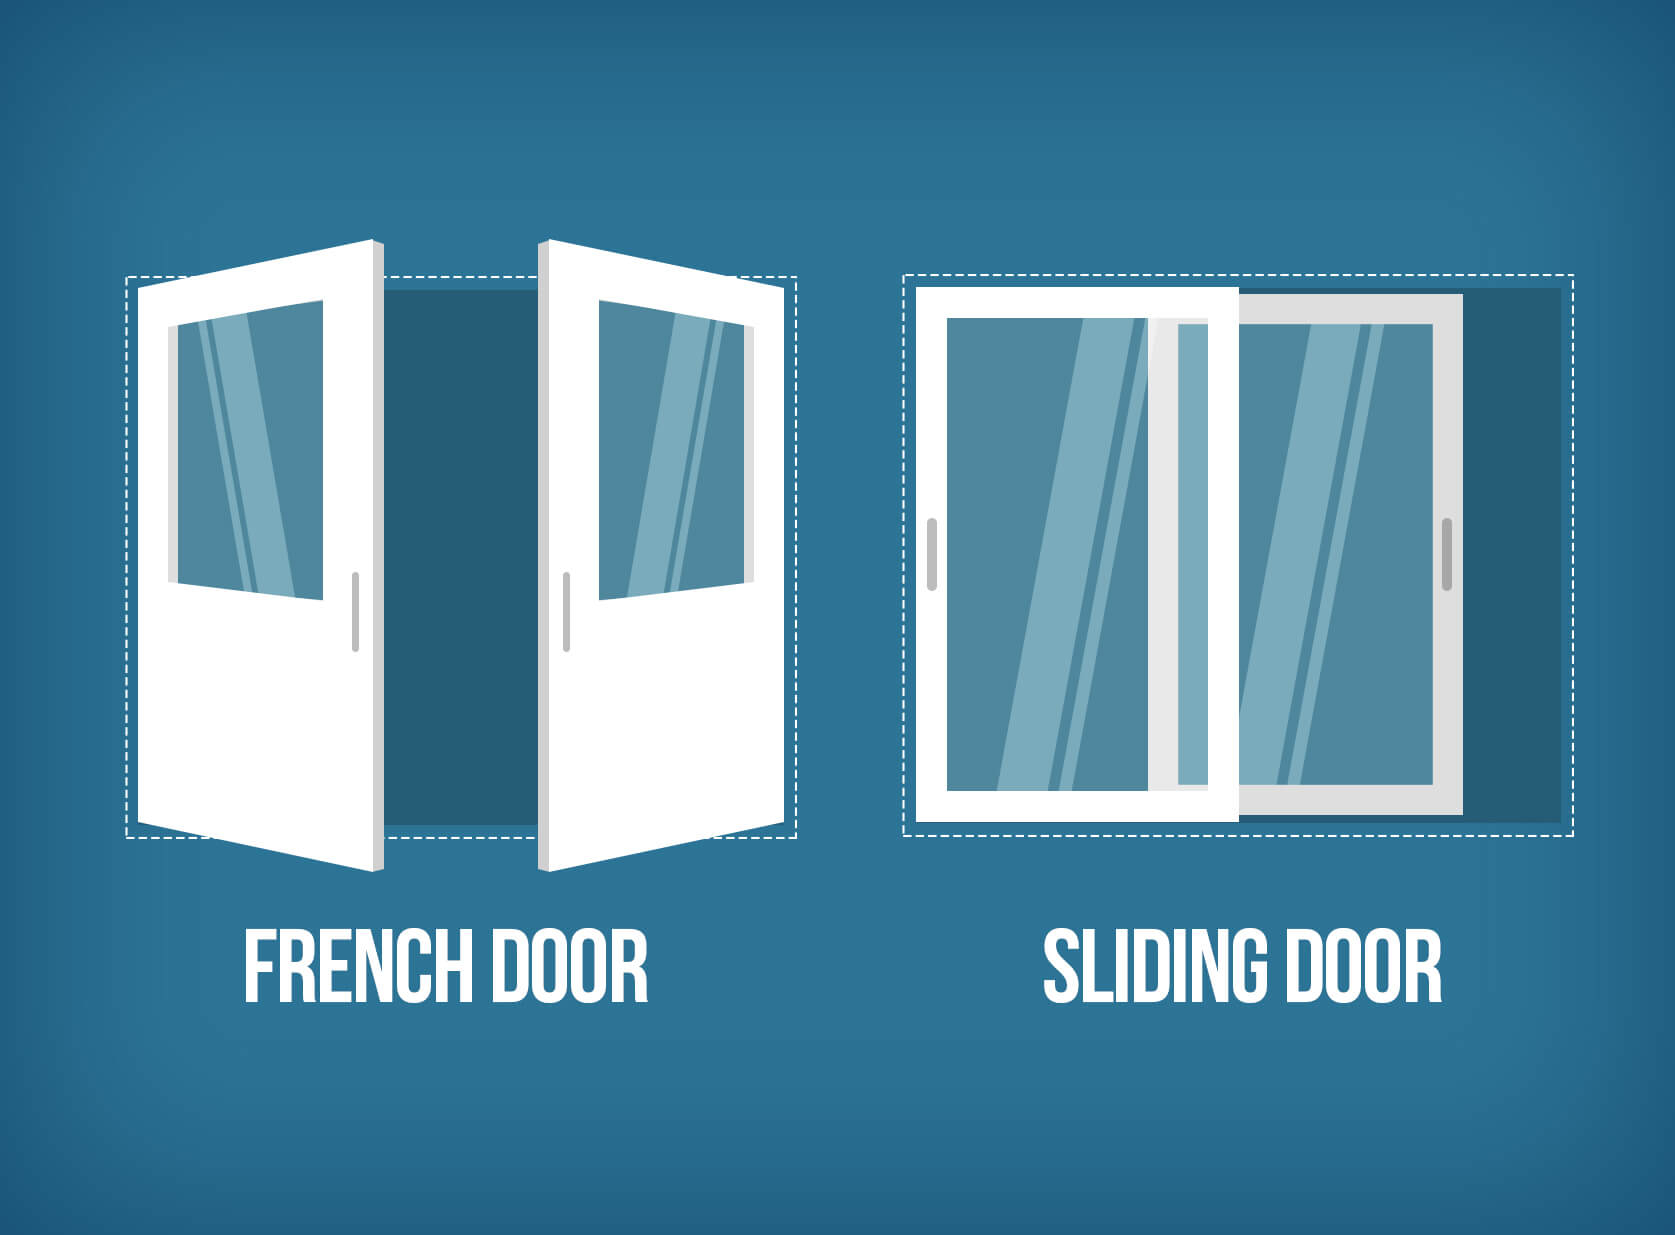 Sliding vs french patio doors what to choose interior for Sliding glass door to french door